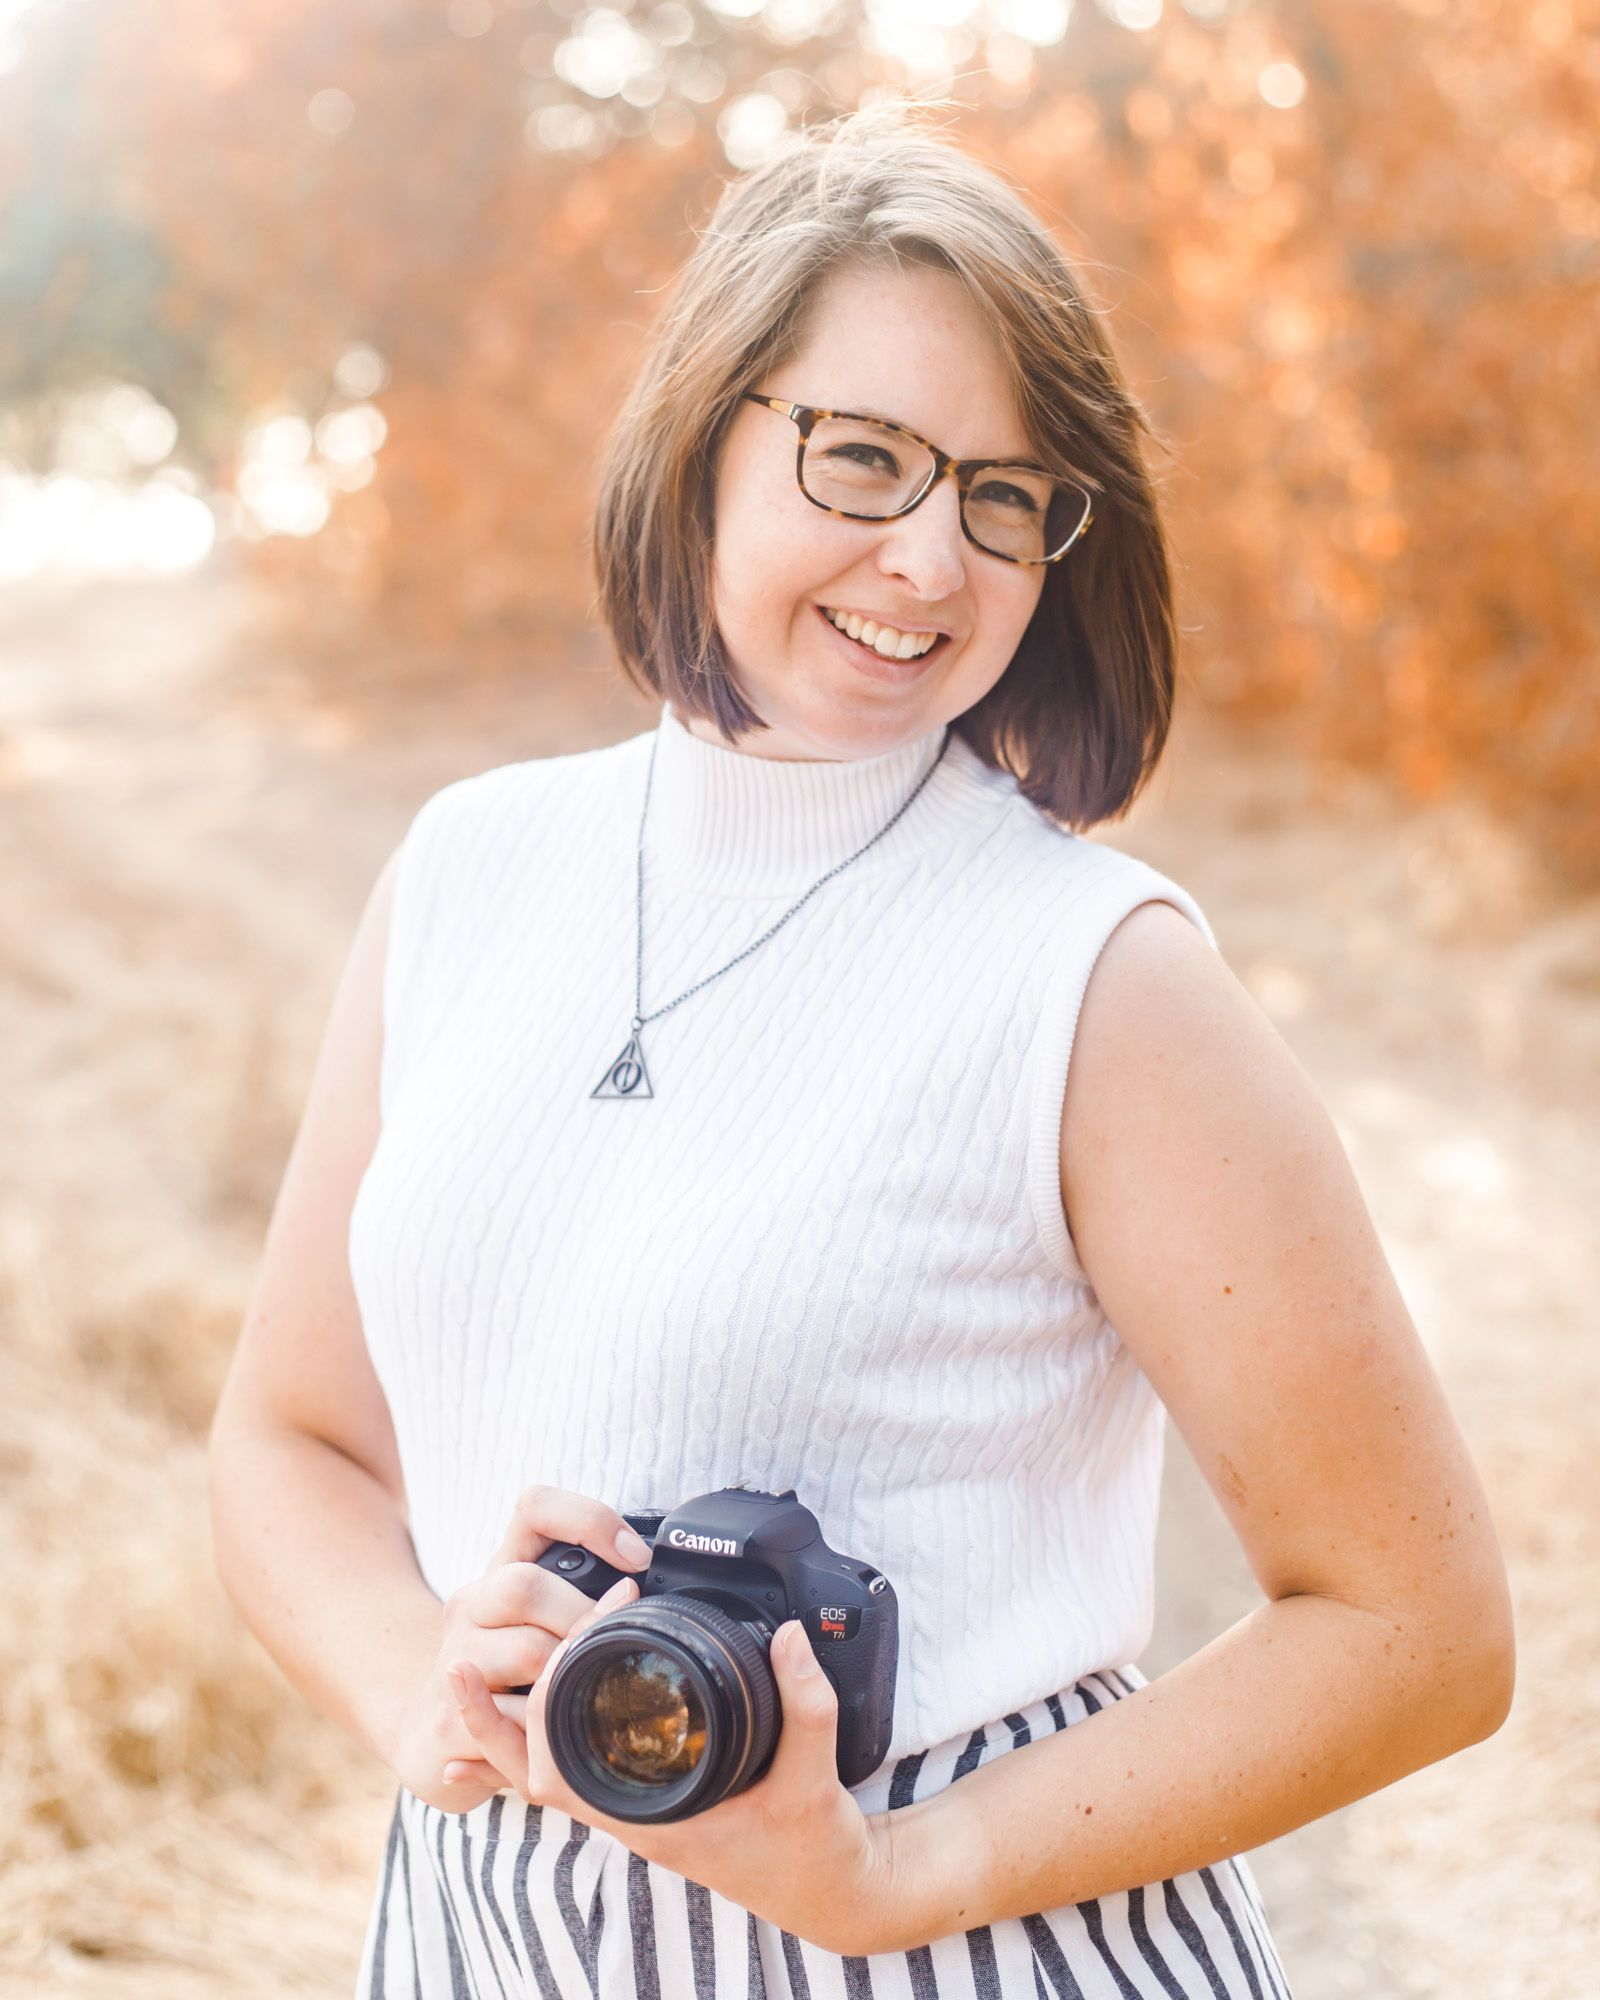 Female with short brown hair and glasses smiling at the camera wearing a Deathly Hallows necklace and holding a DSLR